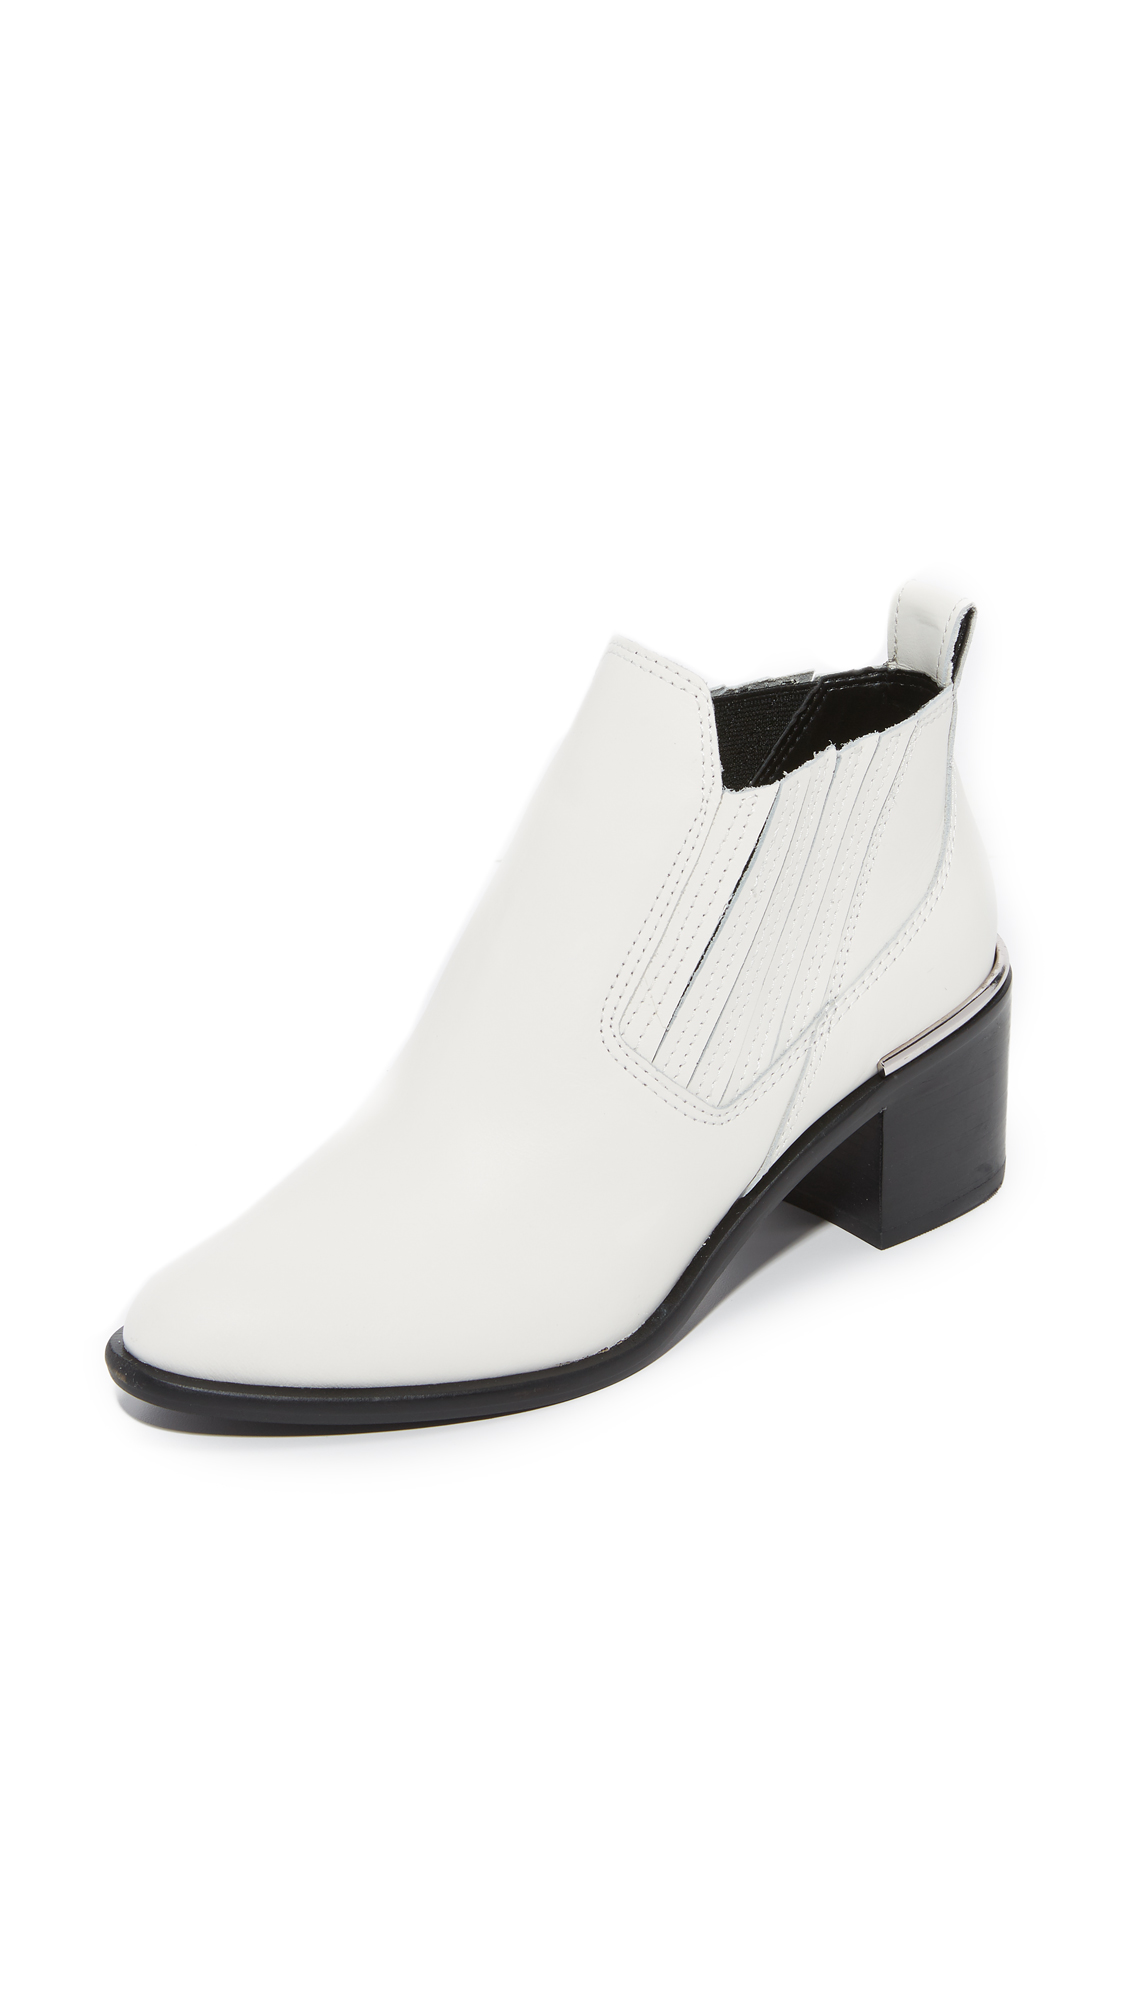 Dolce Vita Percy Booties - Off White at Shopbop